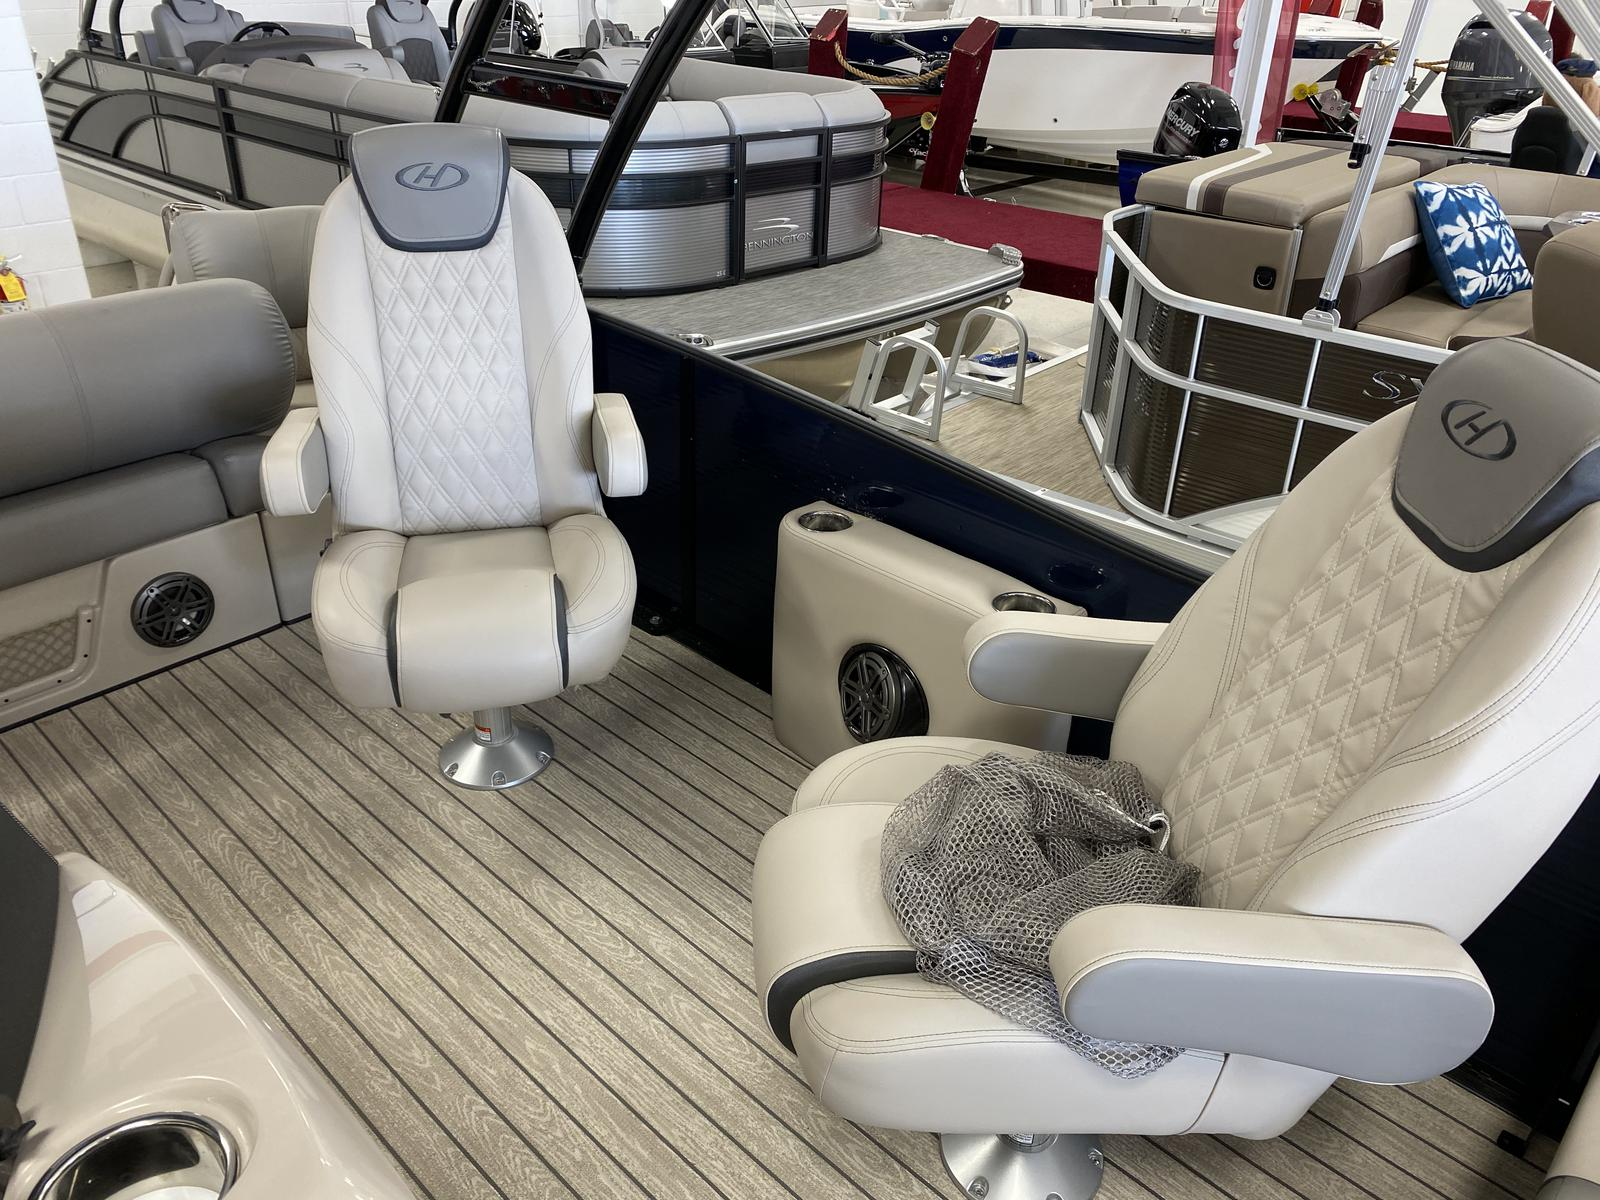 2020 Harris boat for sale, model of the boat is Grand Mariner 270 & Image # 2 of 12